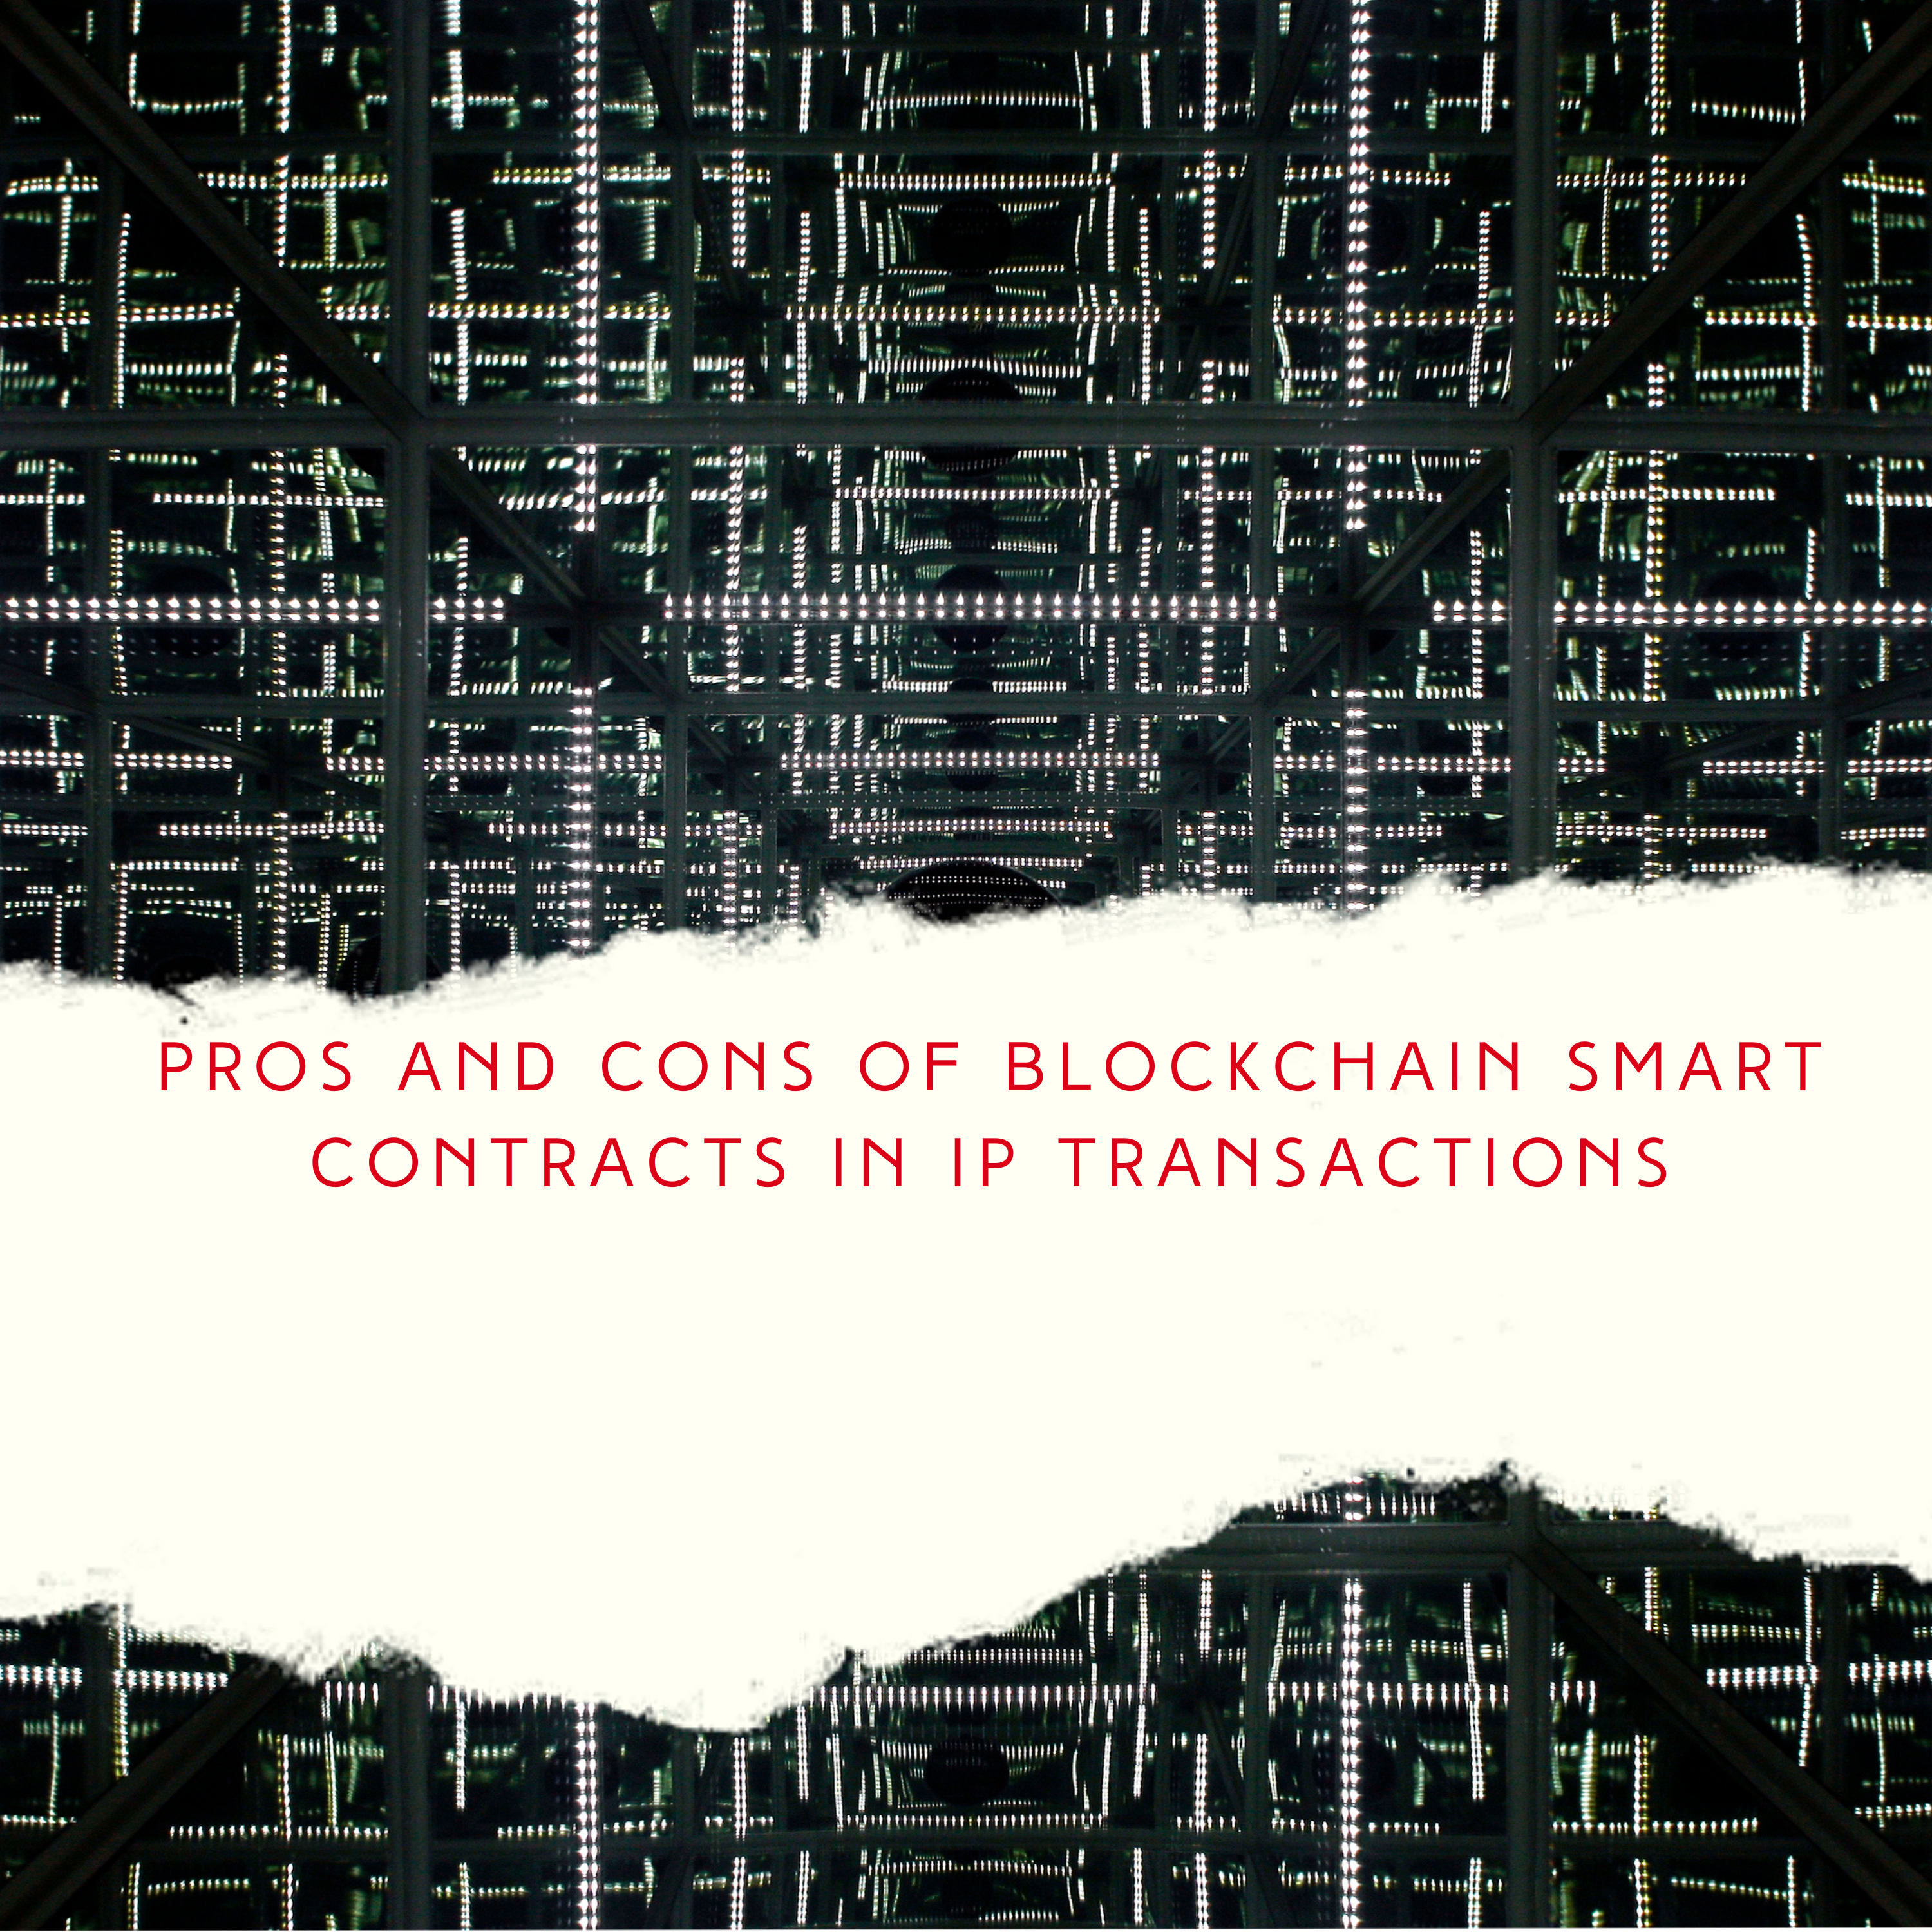 Pros, Cons of Blockchain Smart Contracts in IP Transactions